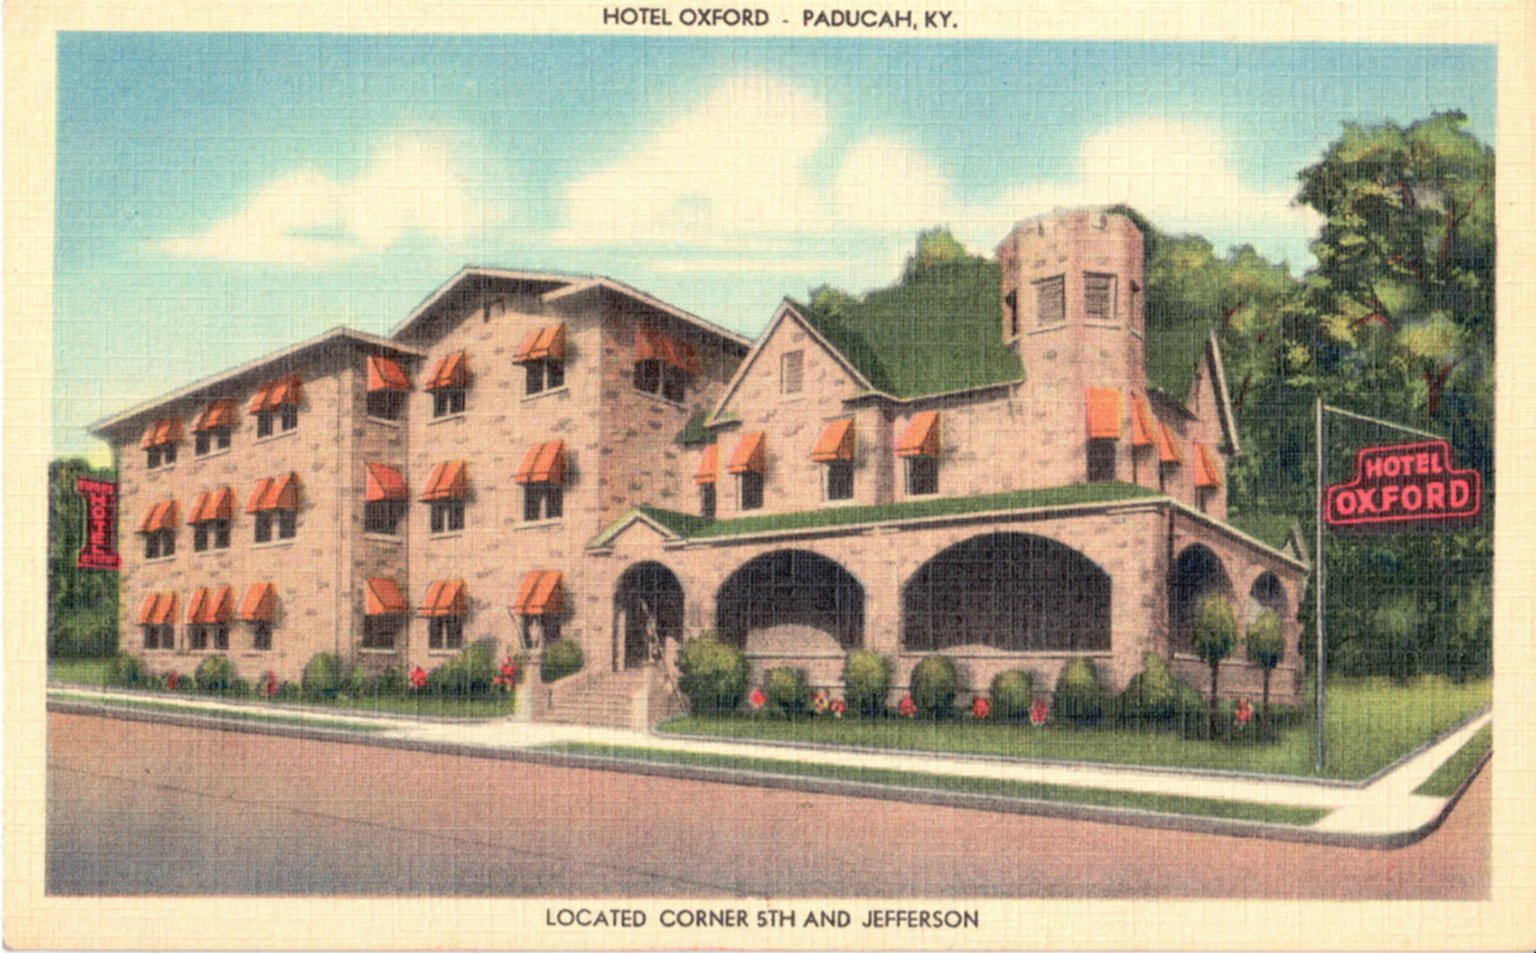 Hotel Oxford, Paducah, KY, Located Corner 5th Jefferson